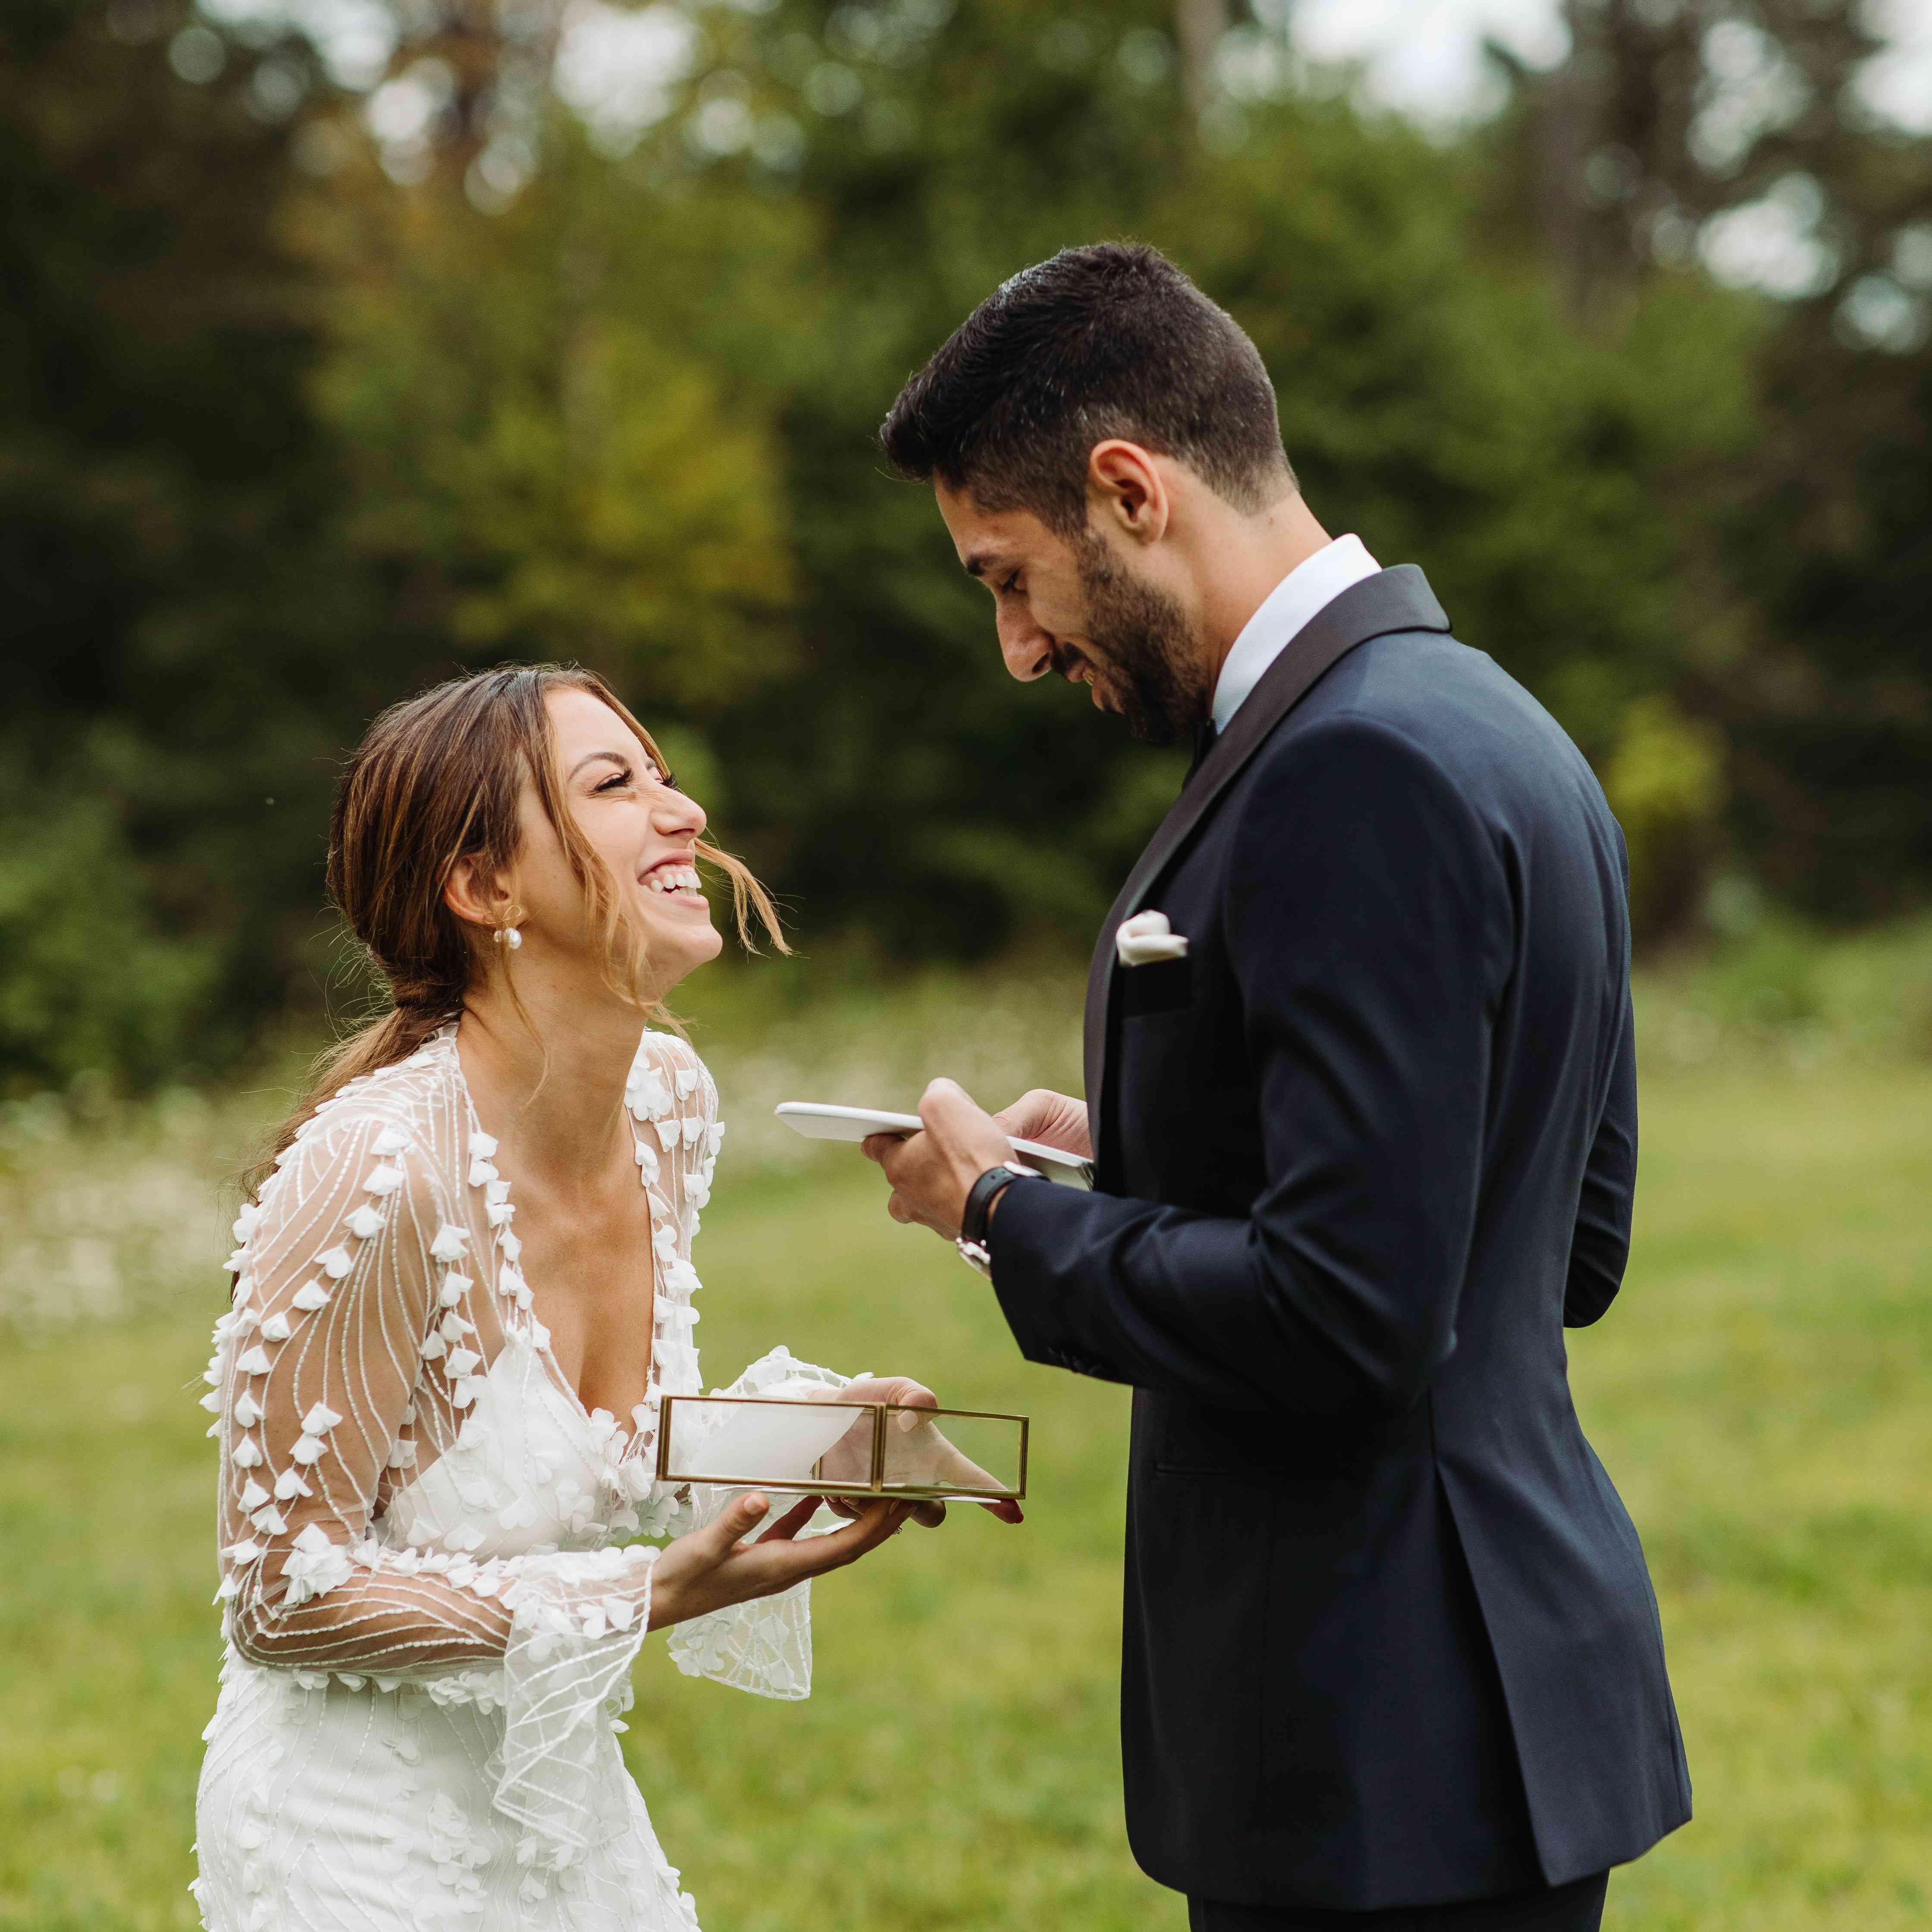 bride and groom exchanging wedding gifts